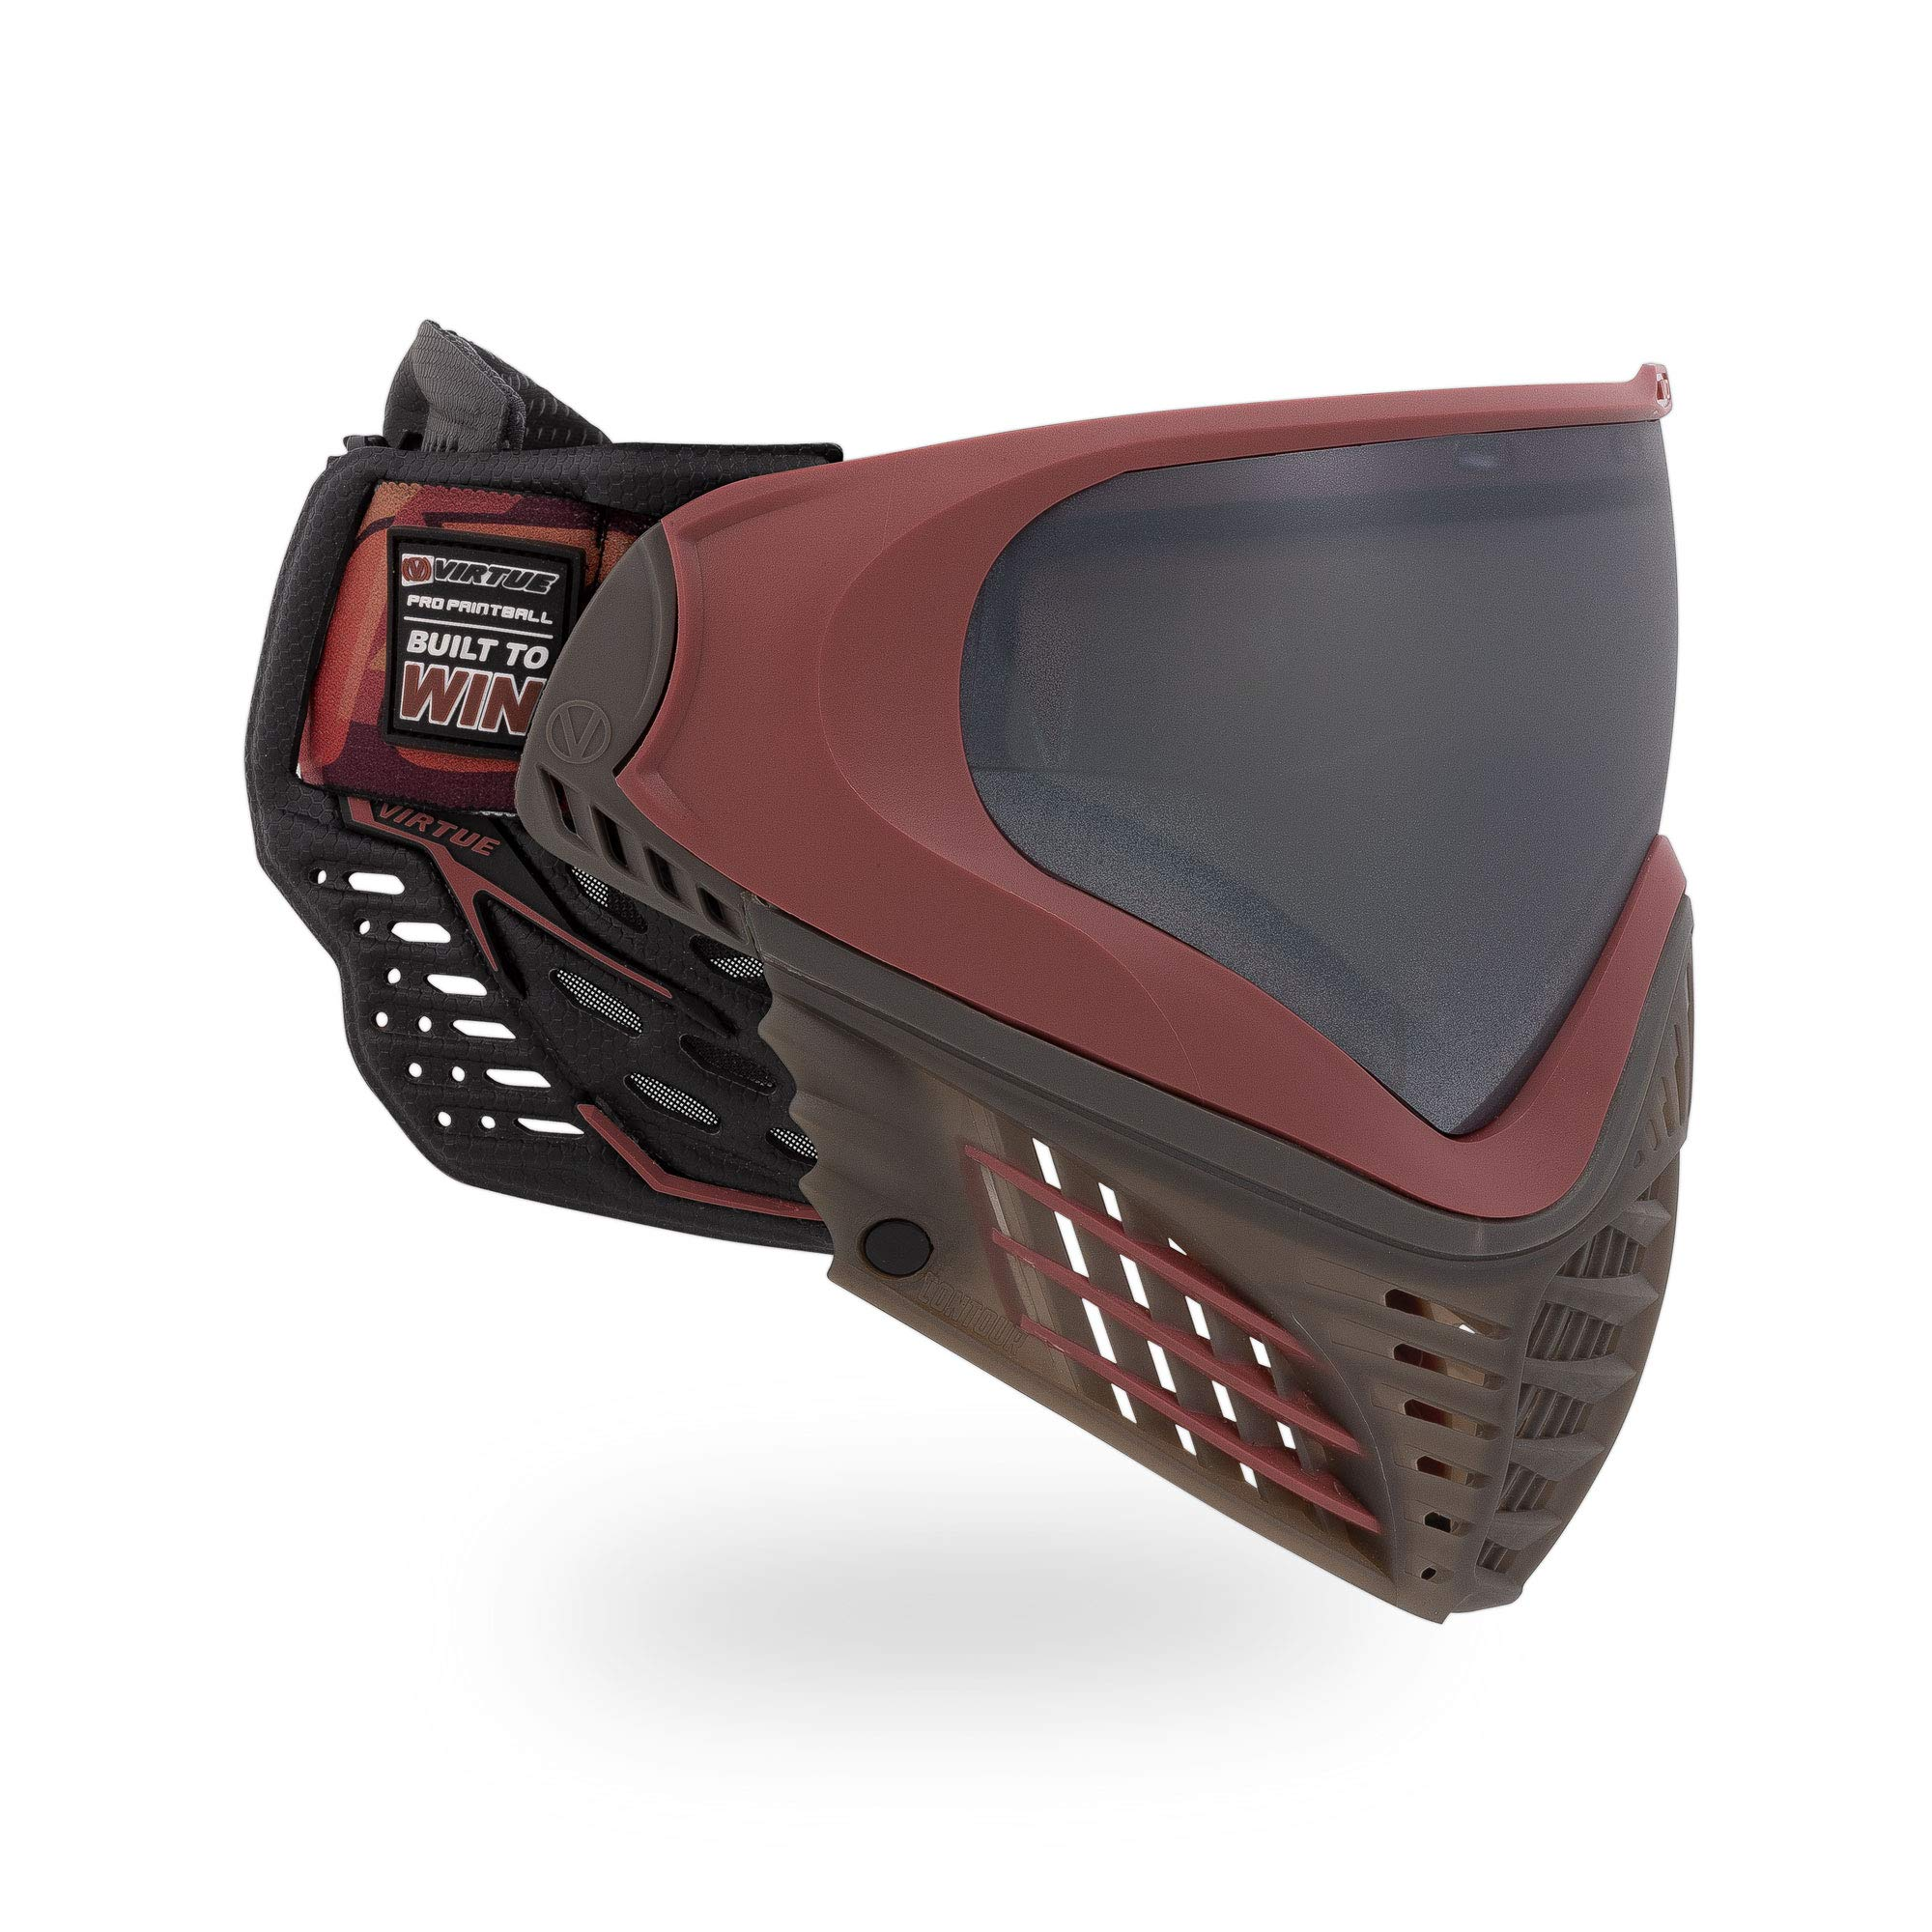 Virtue VIO Contour II Thermal Paintball Goggles/Masks - Dark Slate Red by Virtue Paintball